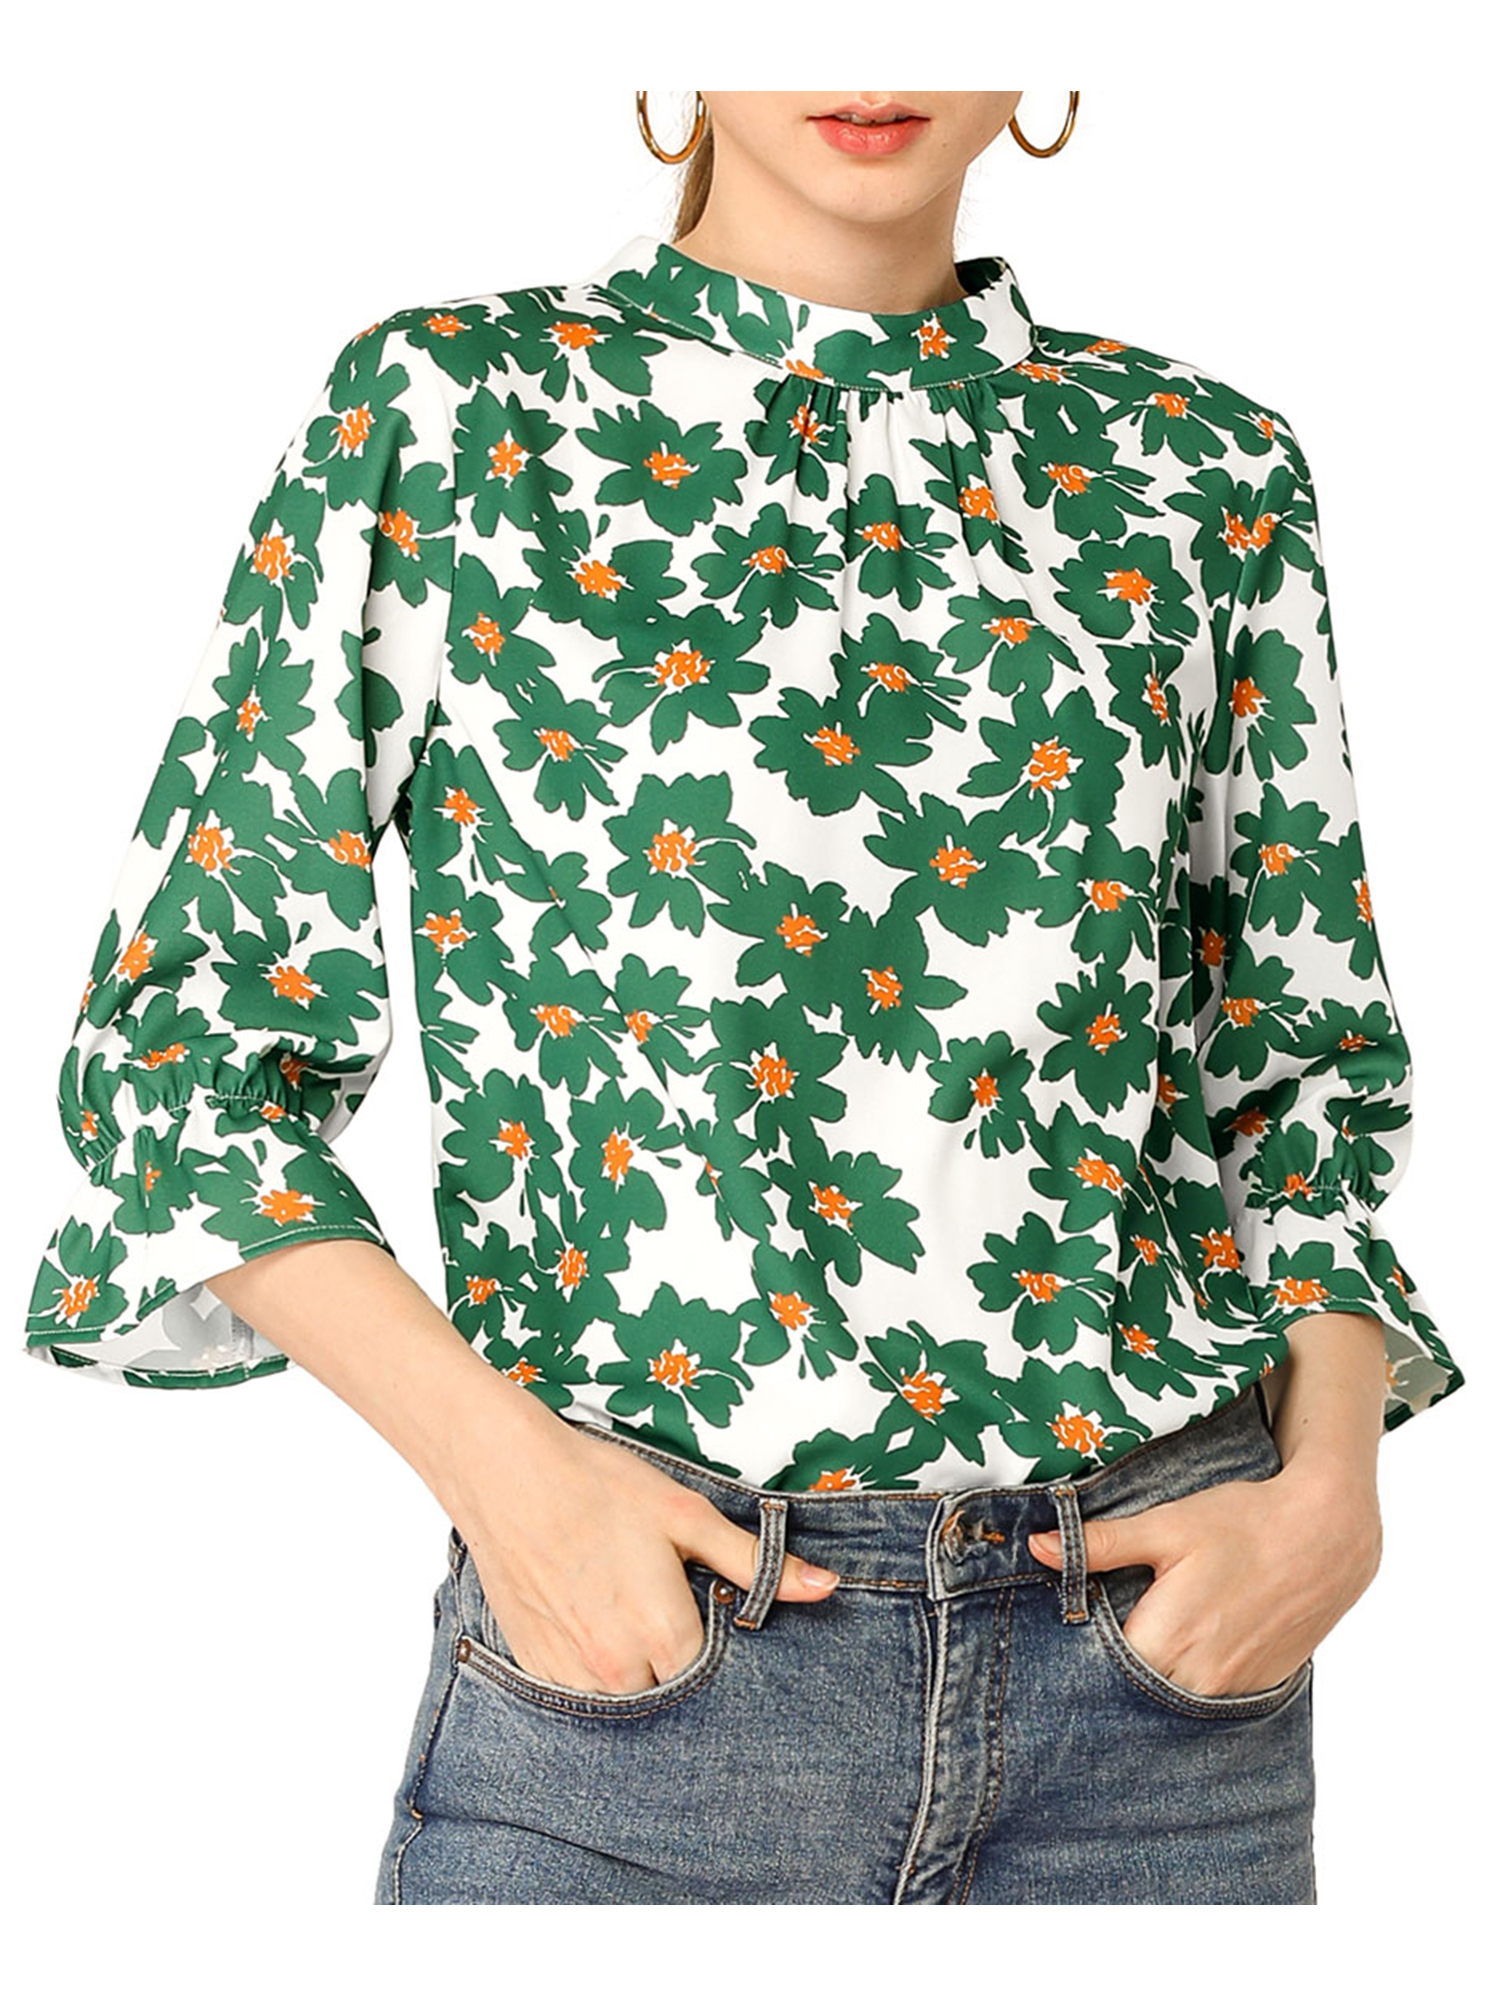 Allegra K  Allegra K Women's Ruffle 3/4 Sleeves Pleated Stand Collar Floral Printed Blouse Top S Green